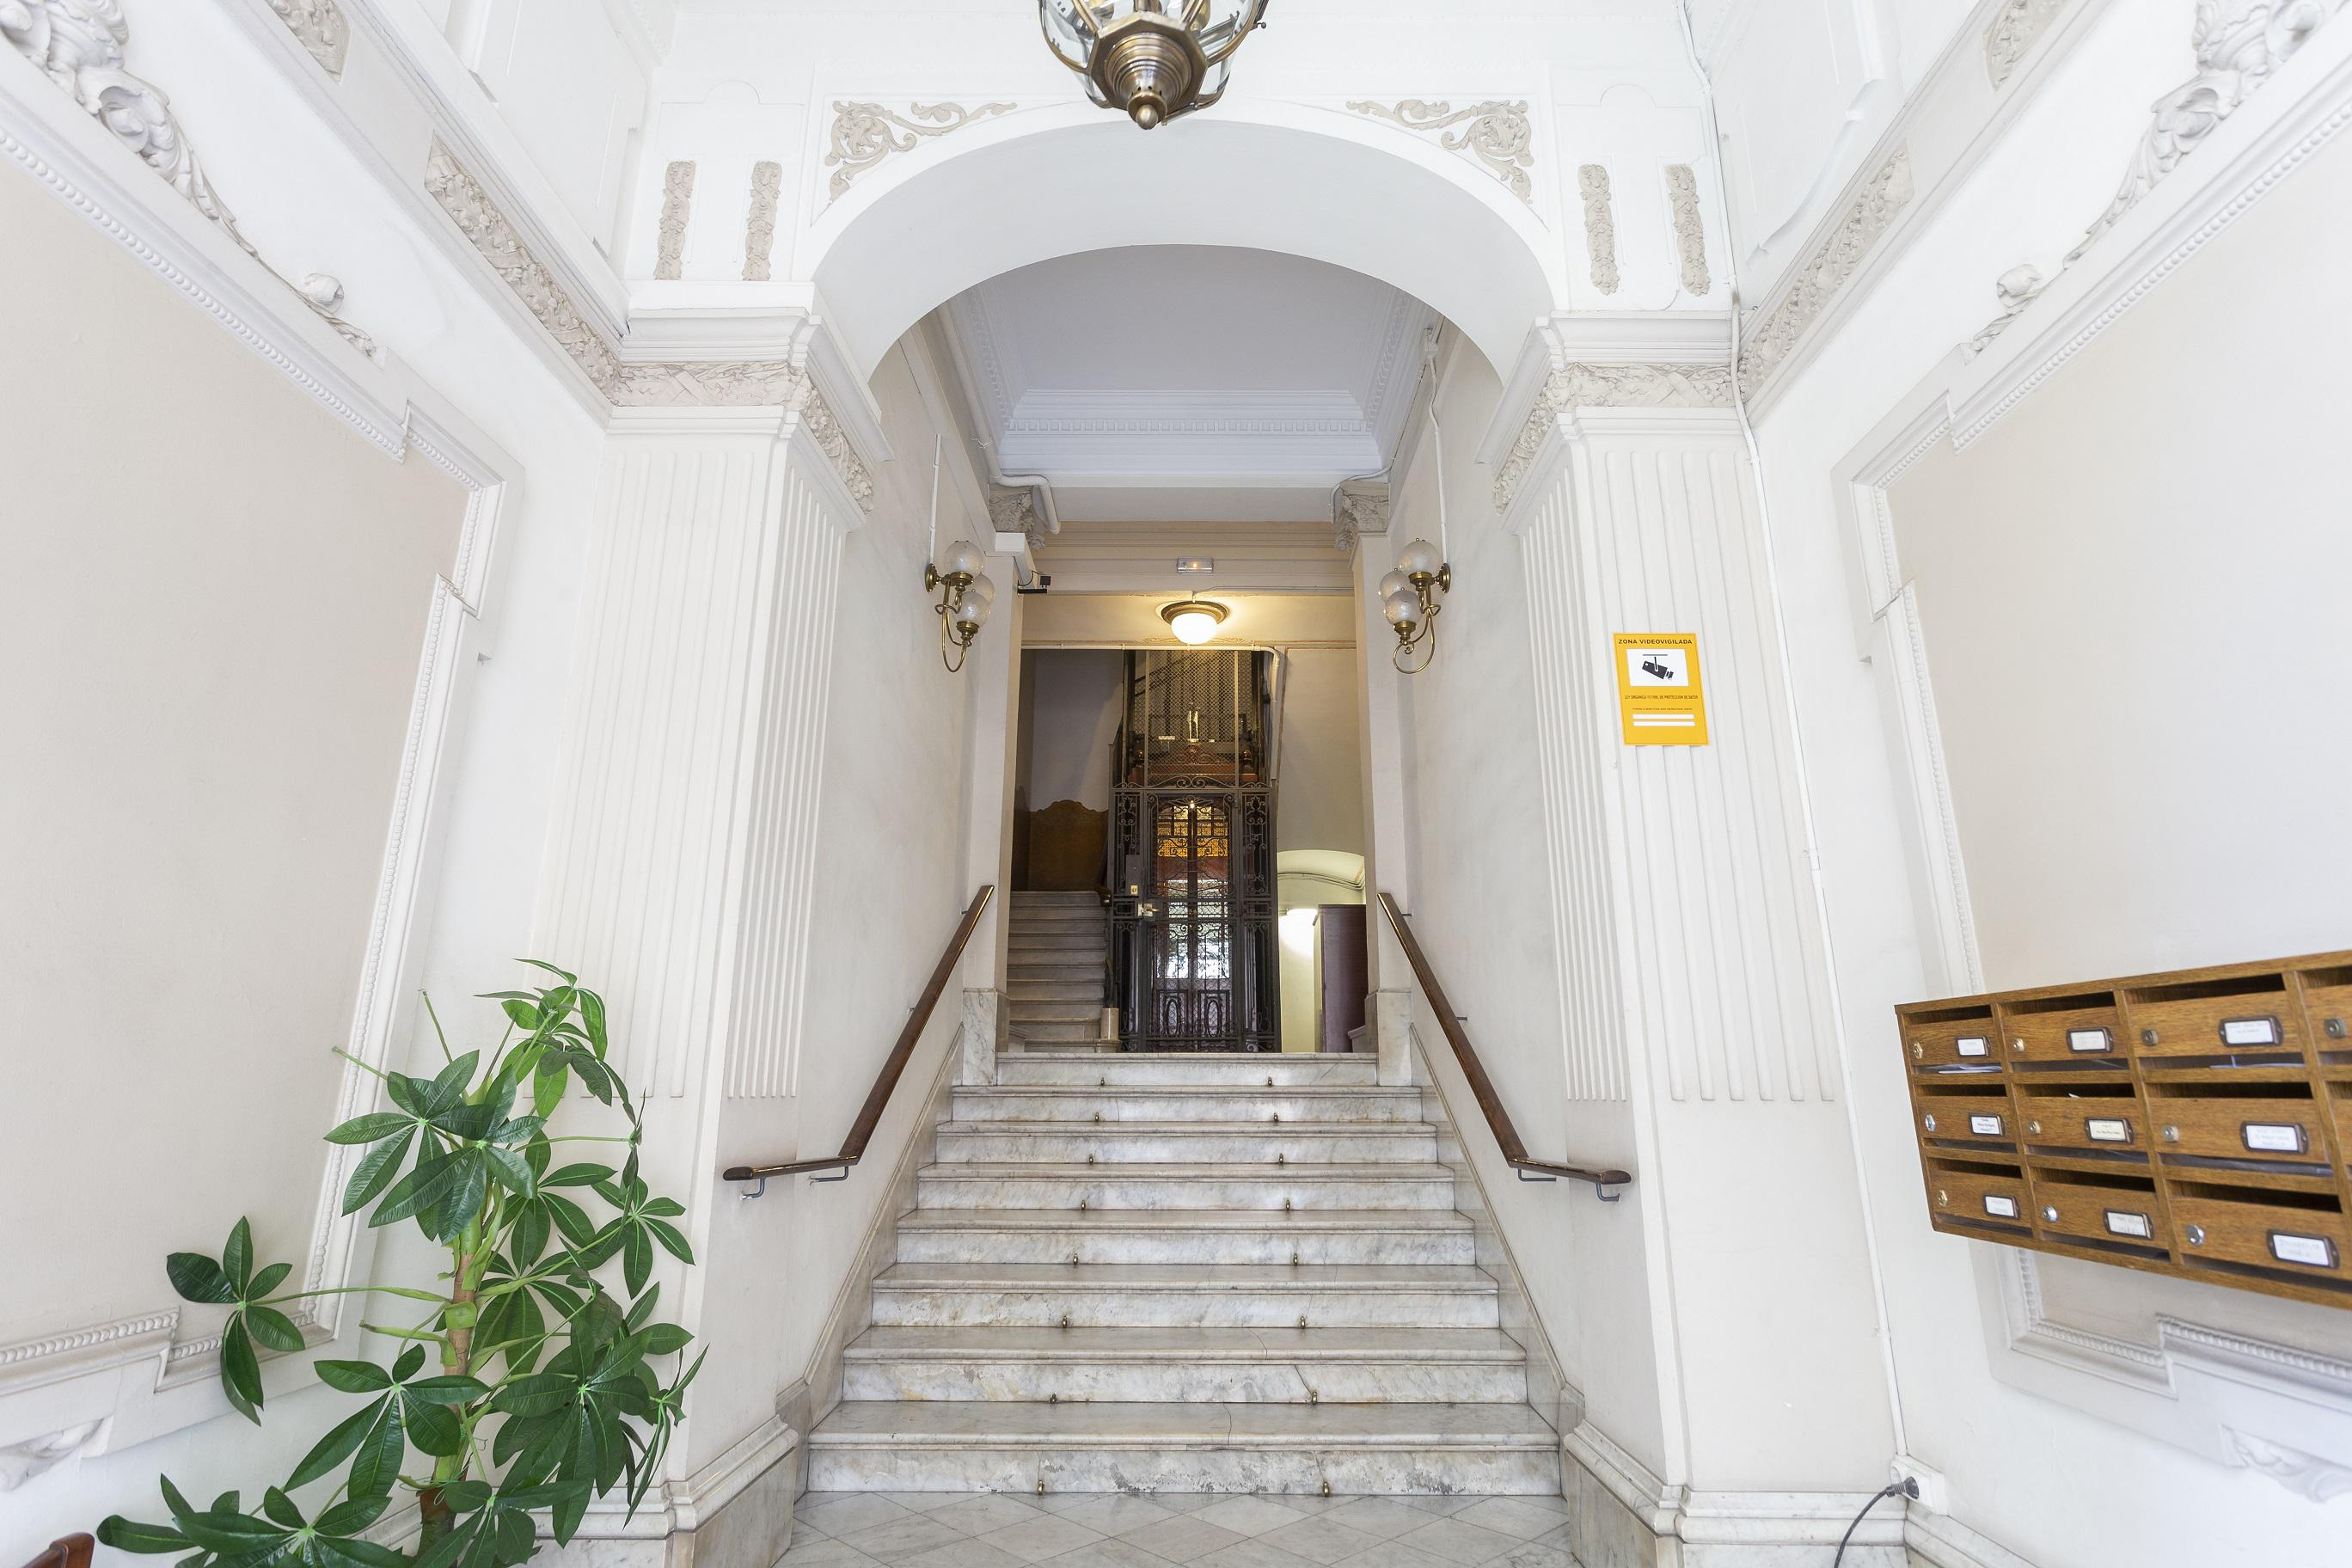 236190 Apartment for sale in Eixample, Old Left Eixample 19